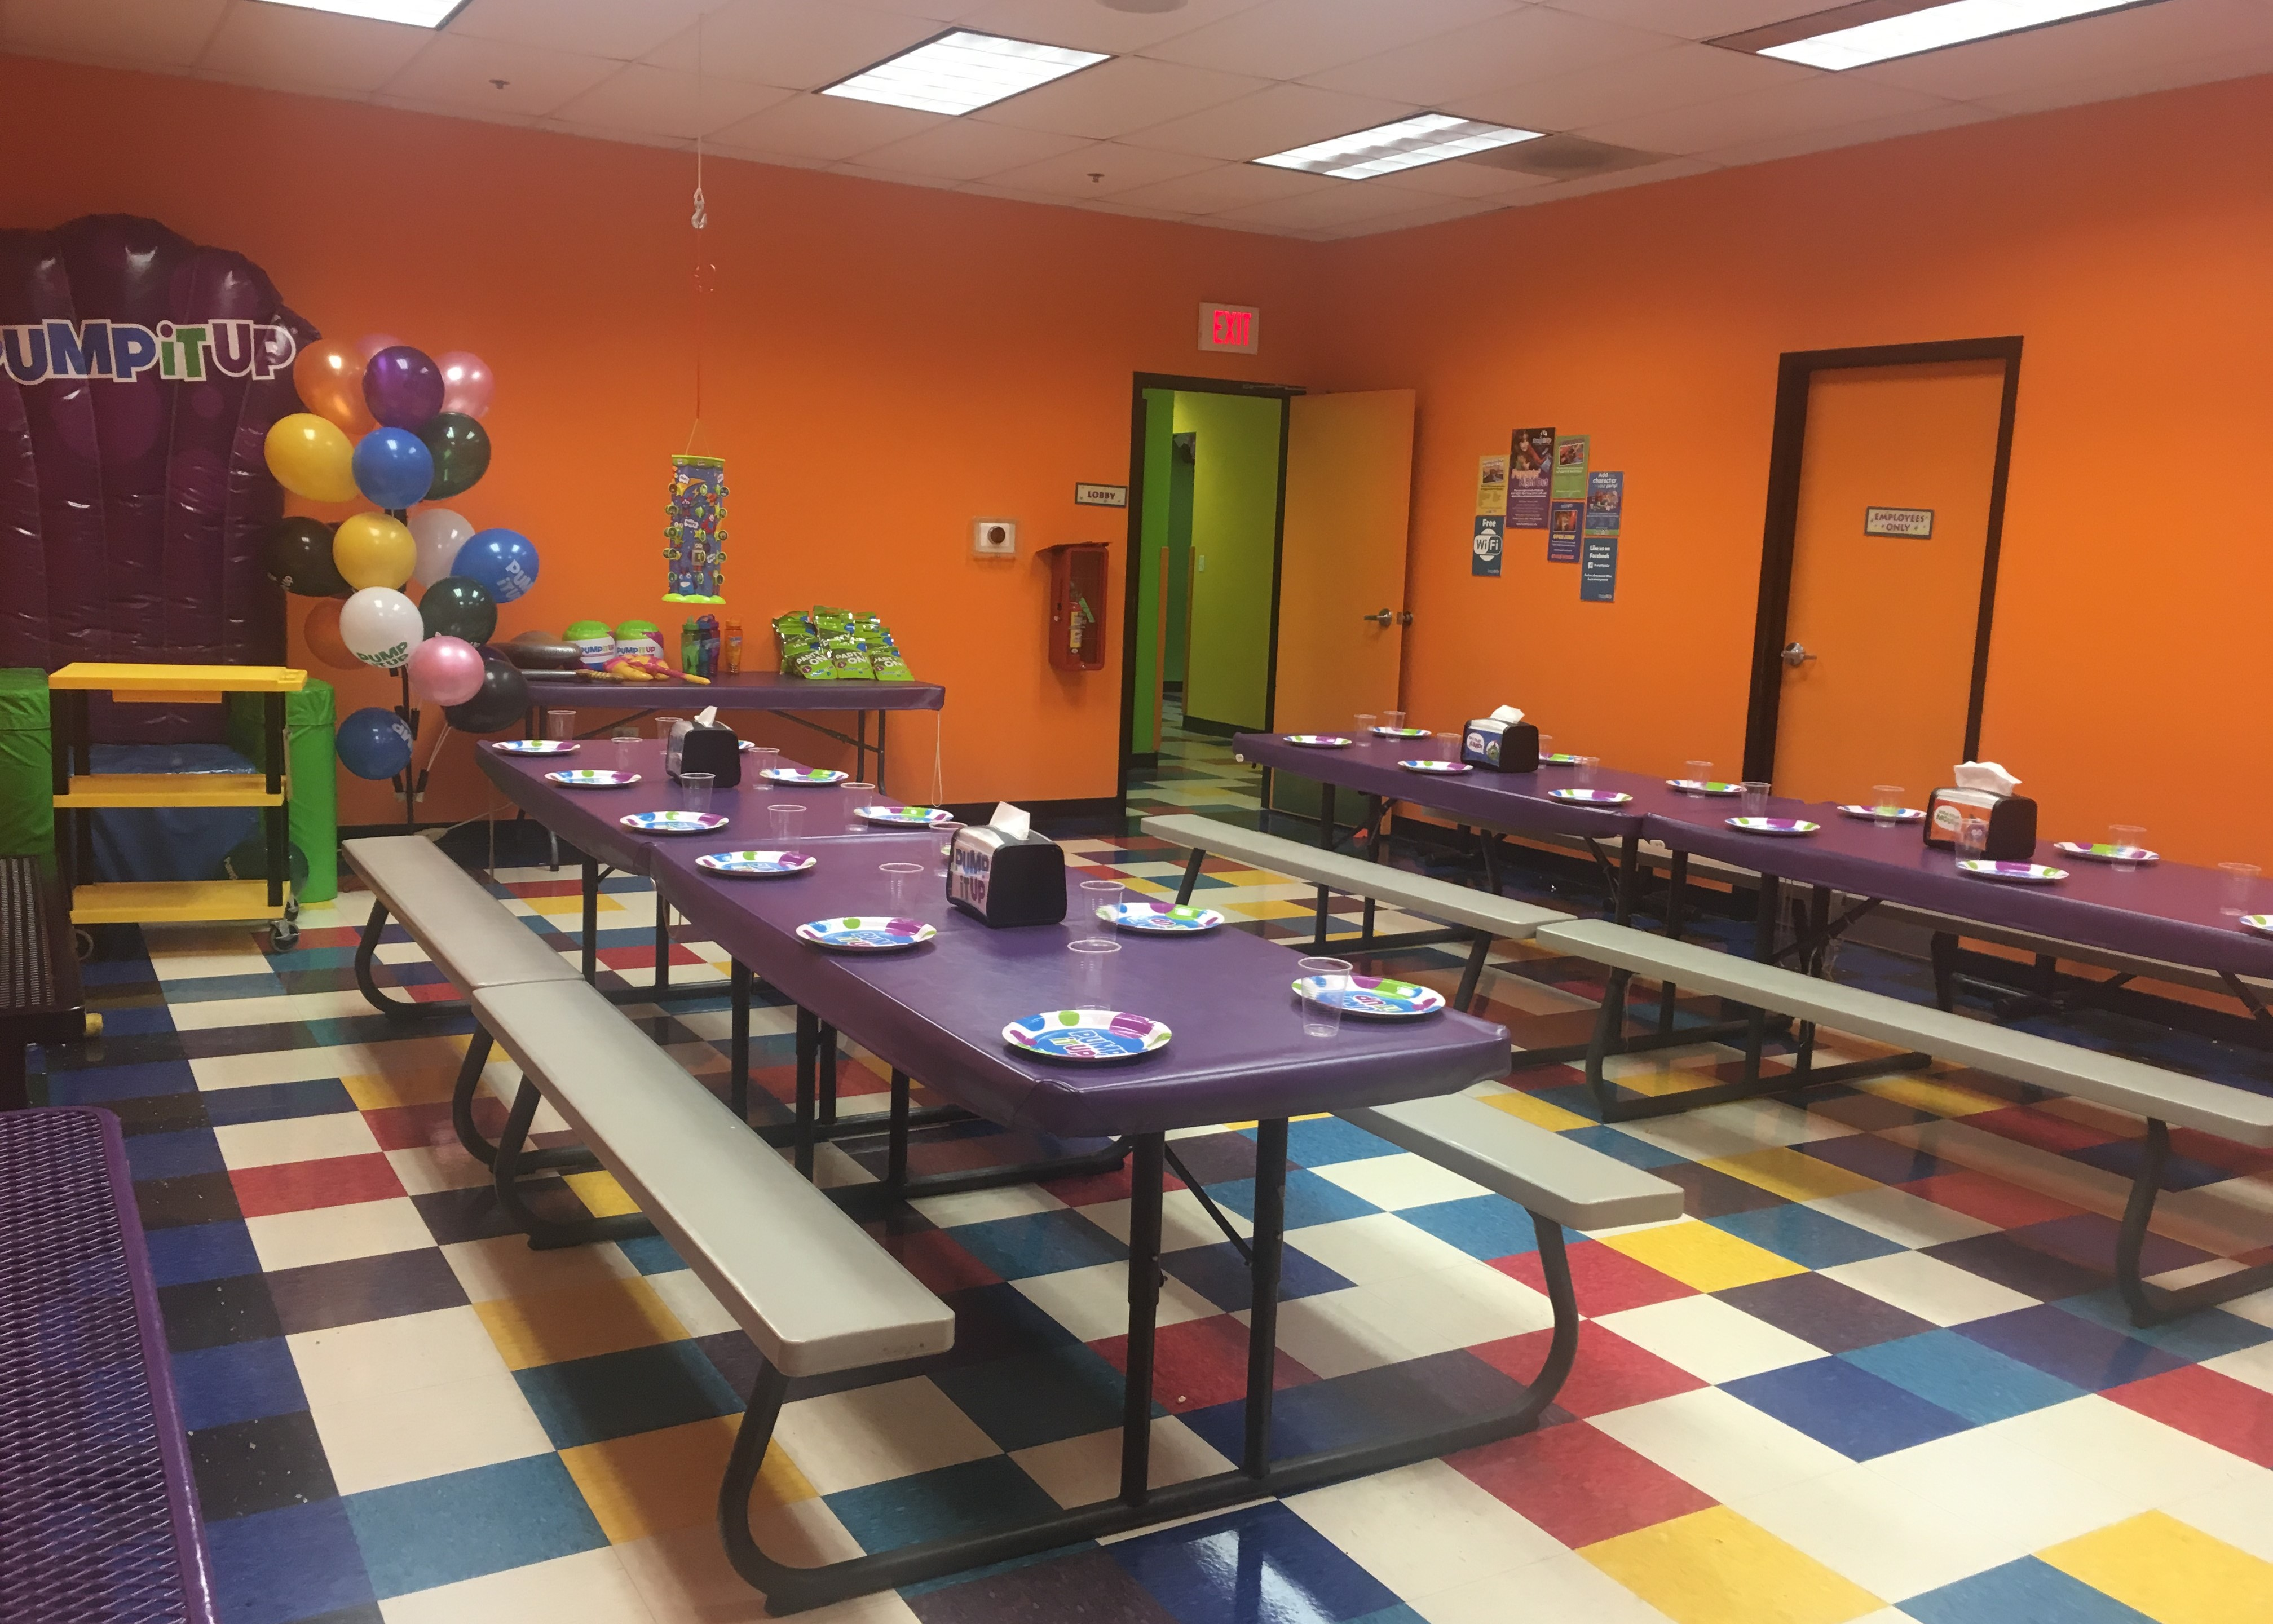 Pump It Up birthday party room with tables and birthday throne for private parties.